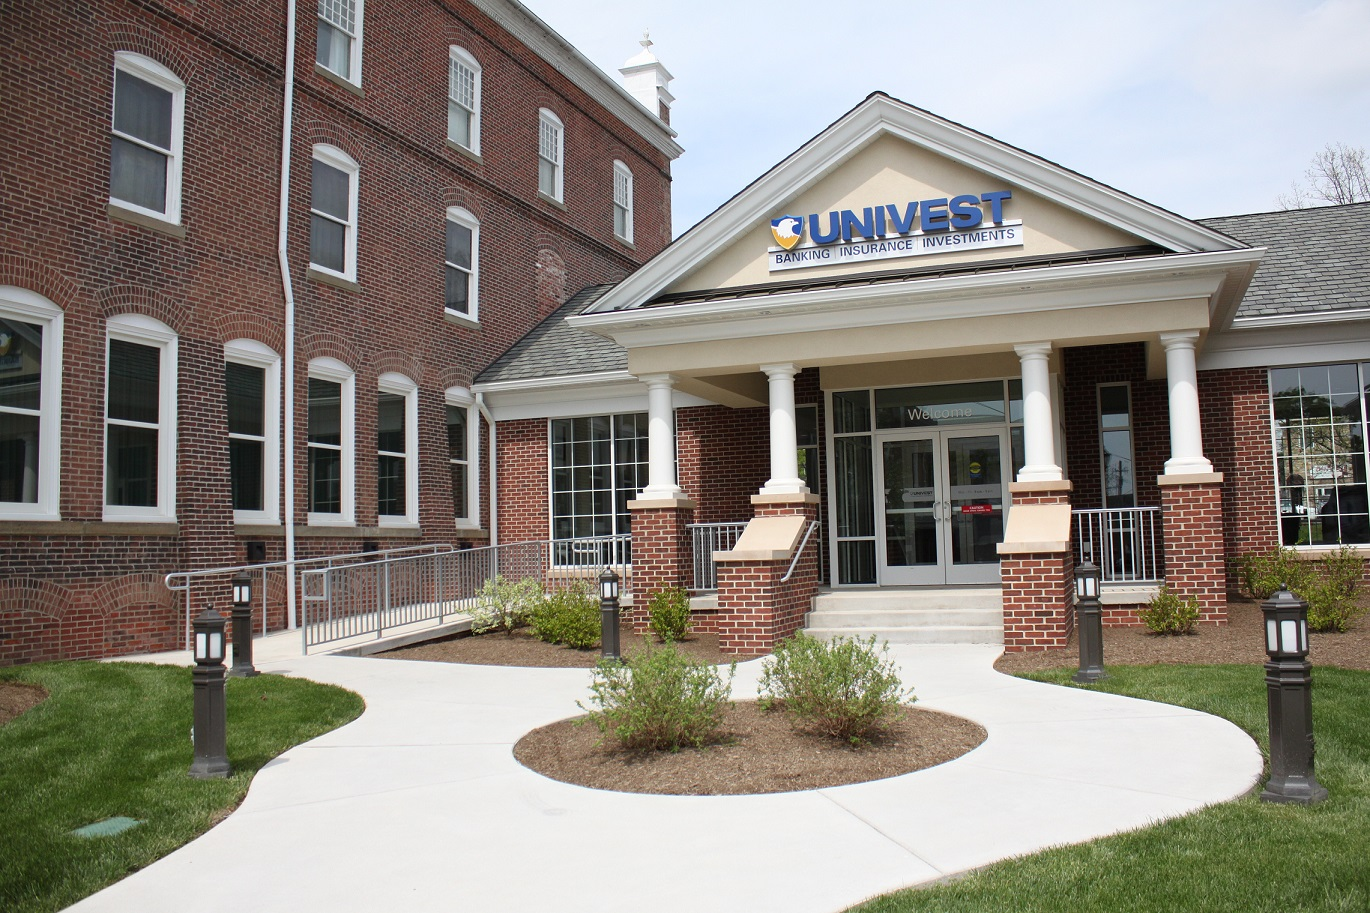 Rooted in community: Univest is committed to providing financial solutions